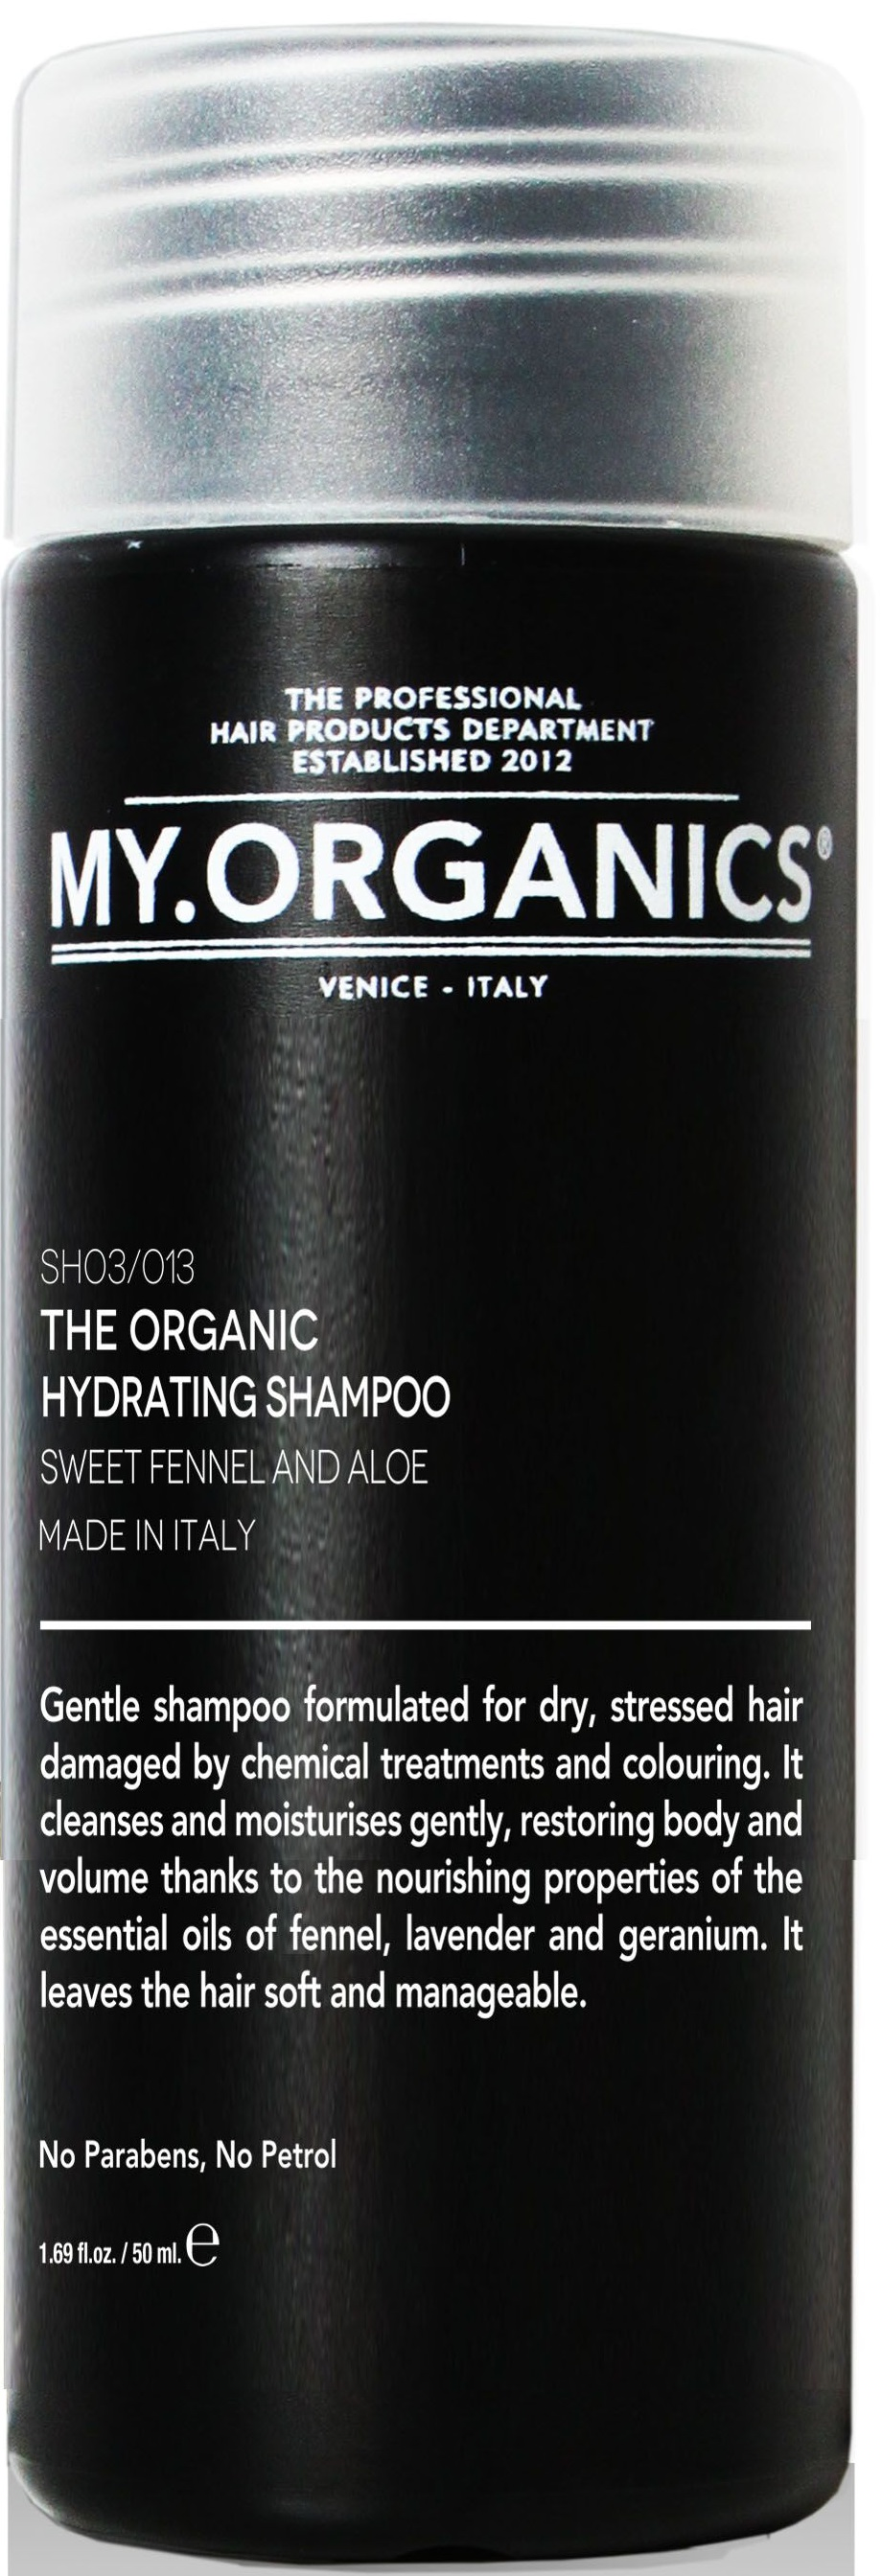 MY.ORGANICS The Organic Hydrating Shampoo Sweet Fennel And Aloe 50ml